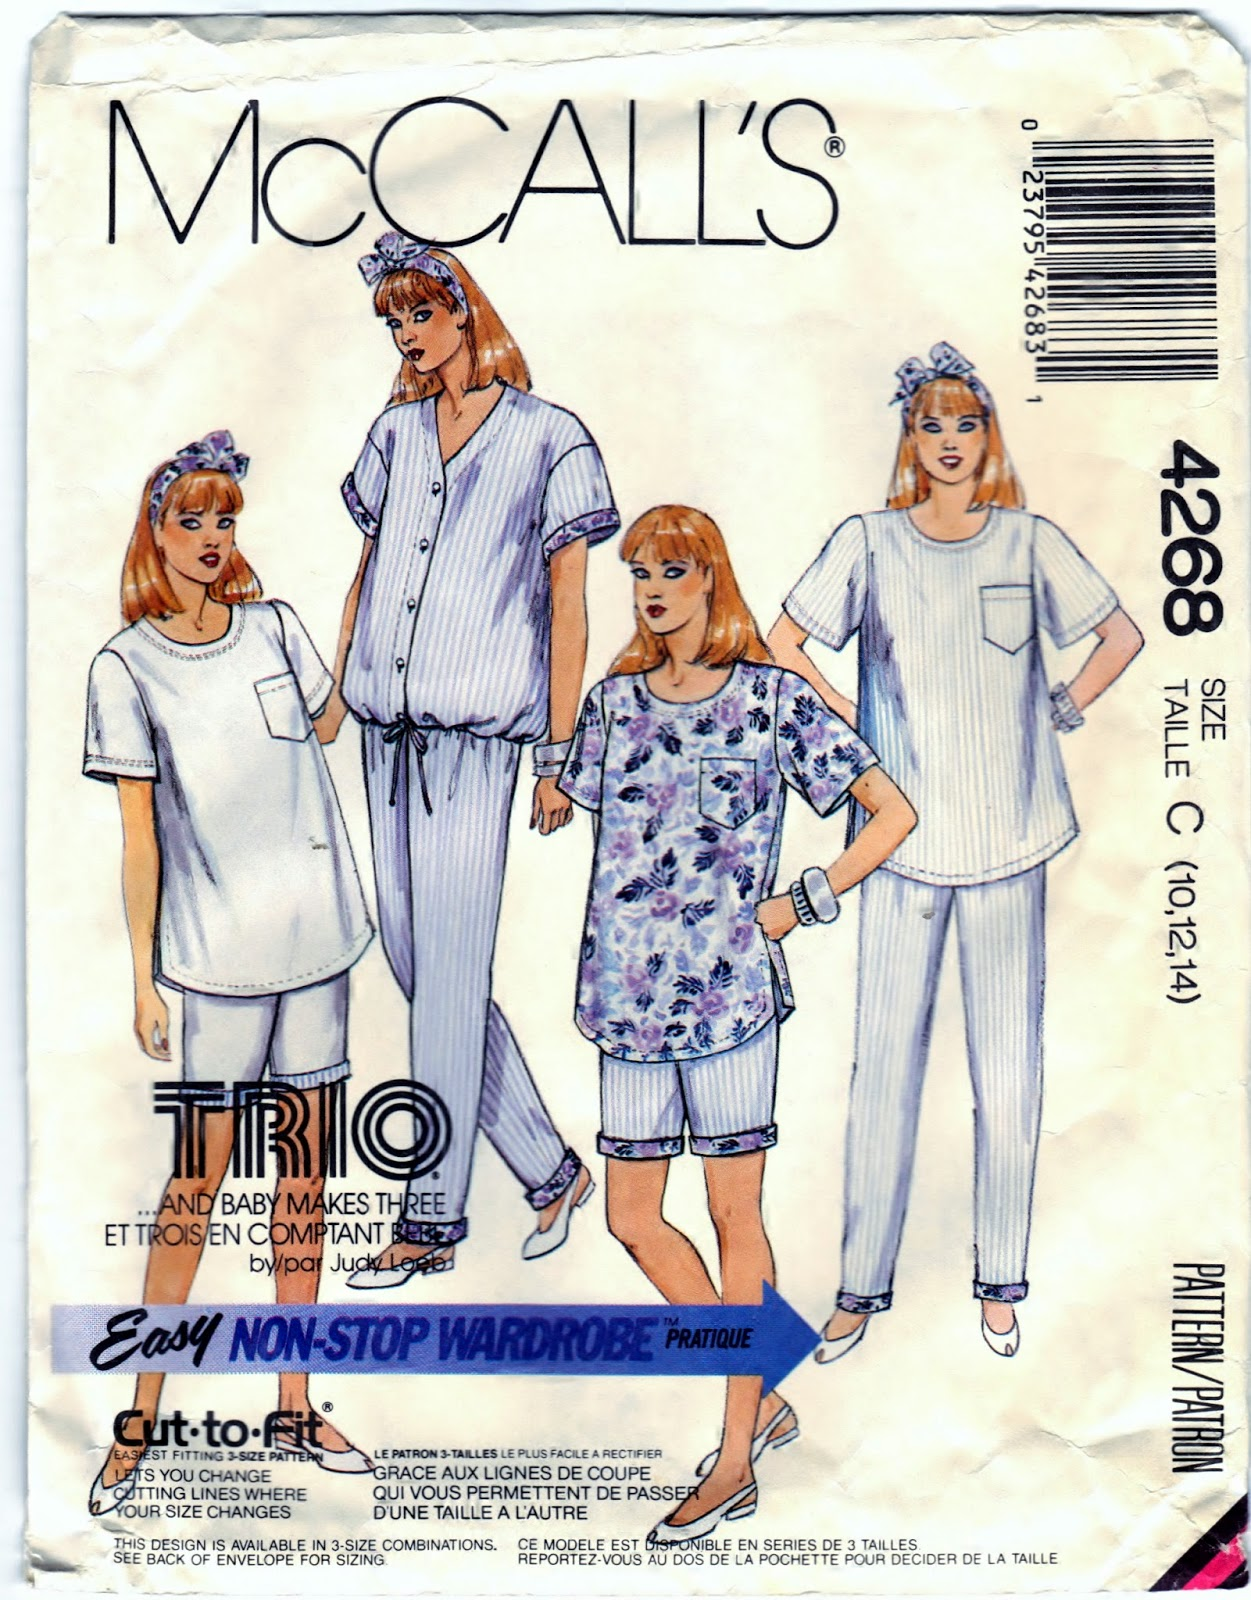 https://www.etsy.com/listing/189263902/mccalls-4268-pattern-maternity-jumpsuit